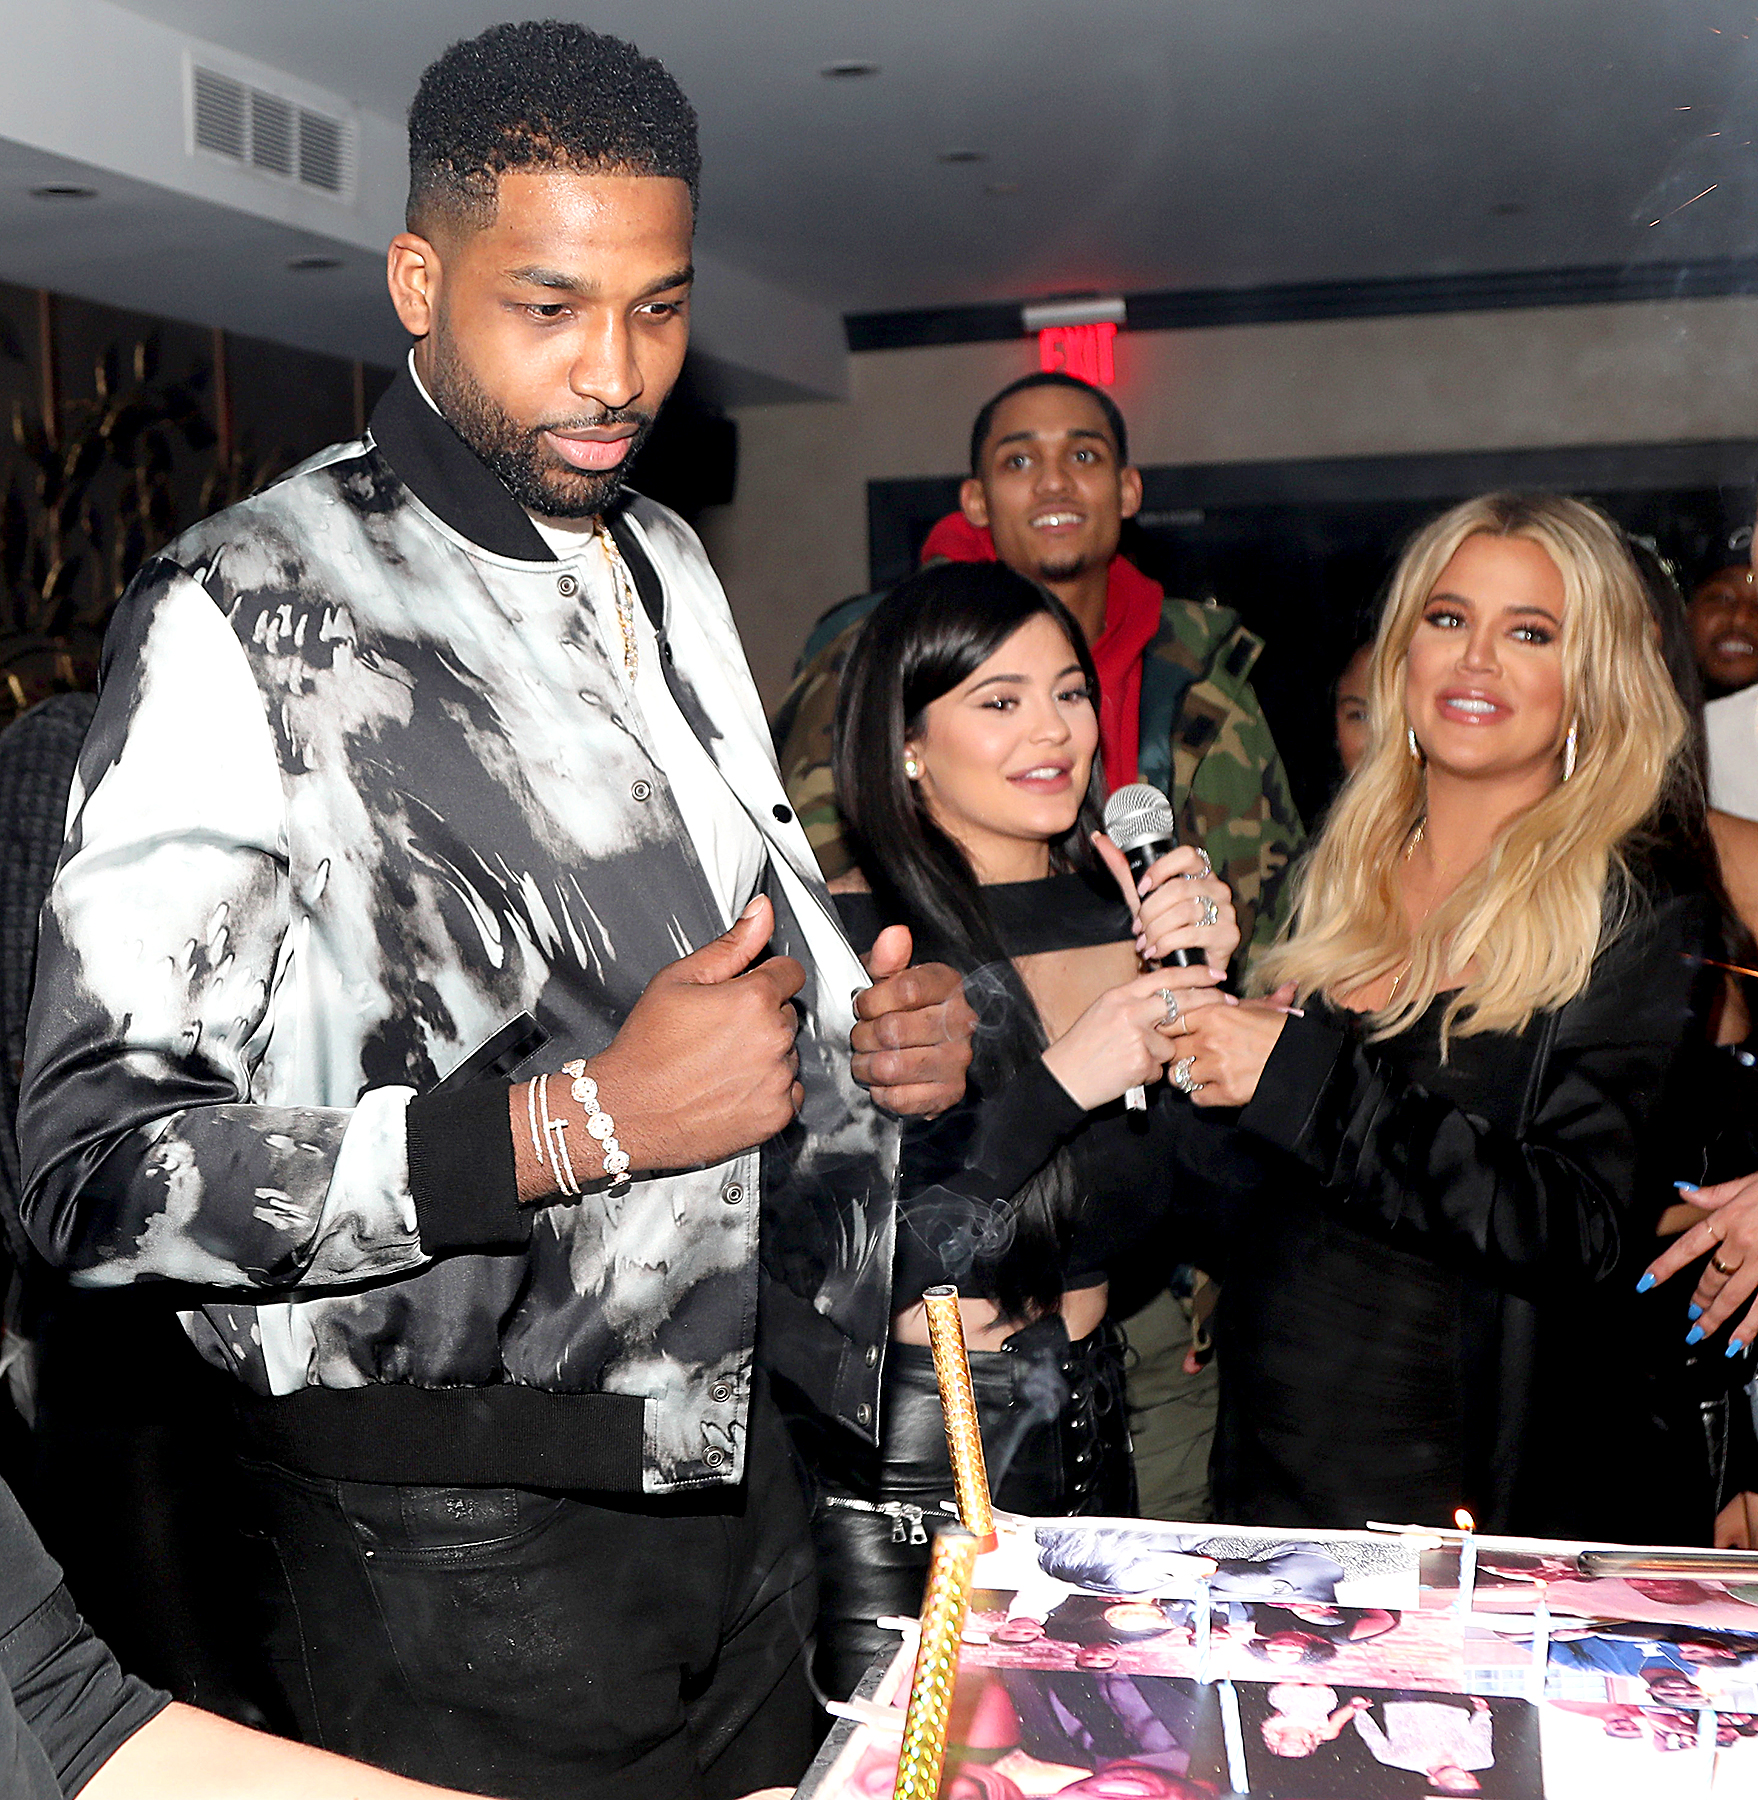 "Khloe_Tristan-Put-Problems-Behind-Them - A fresh start! ""Khloé and Tristan have completely put all their problems behind them and are happy,"" a source told Us on June 29."